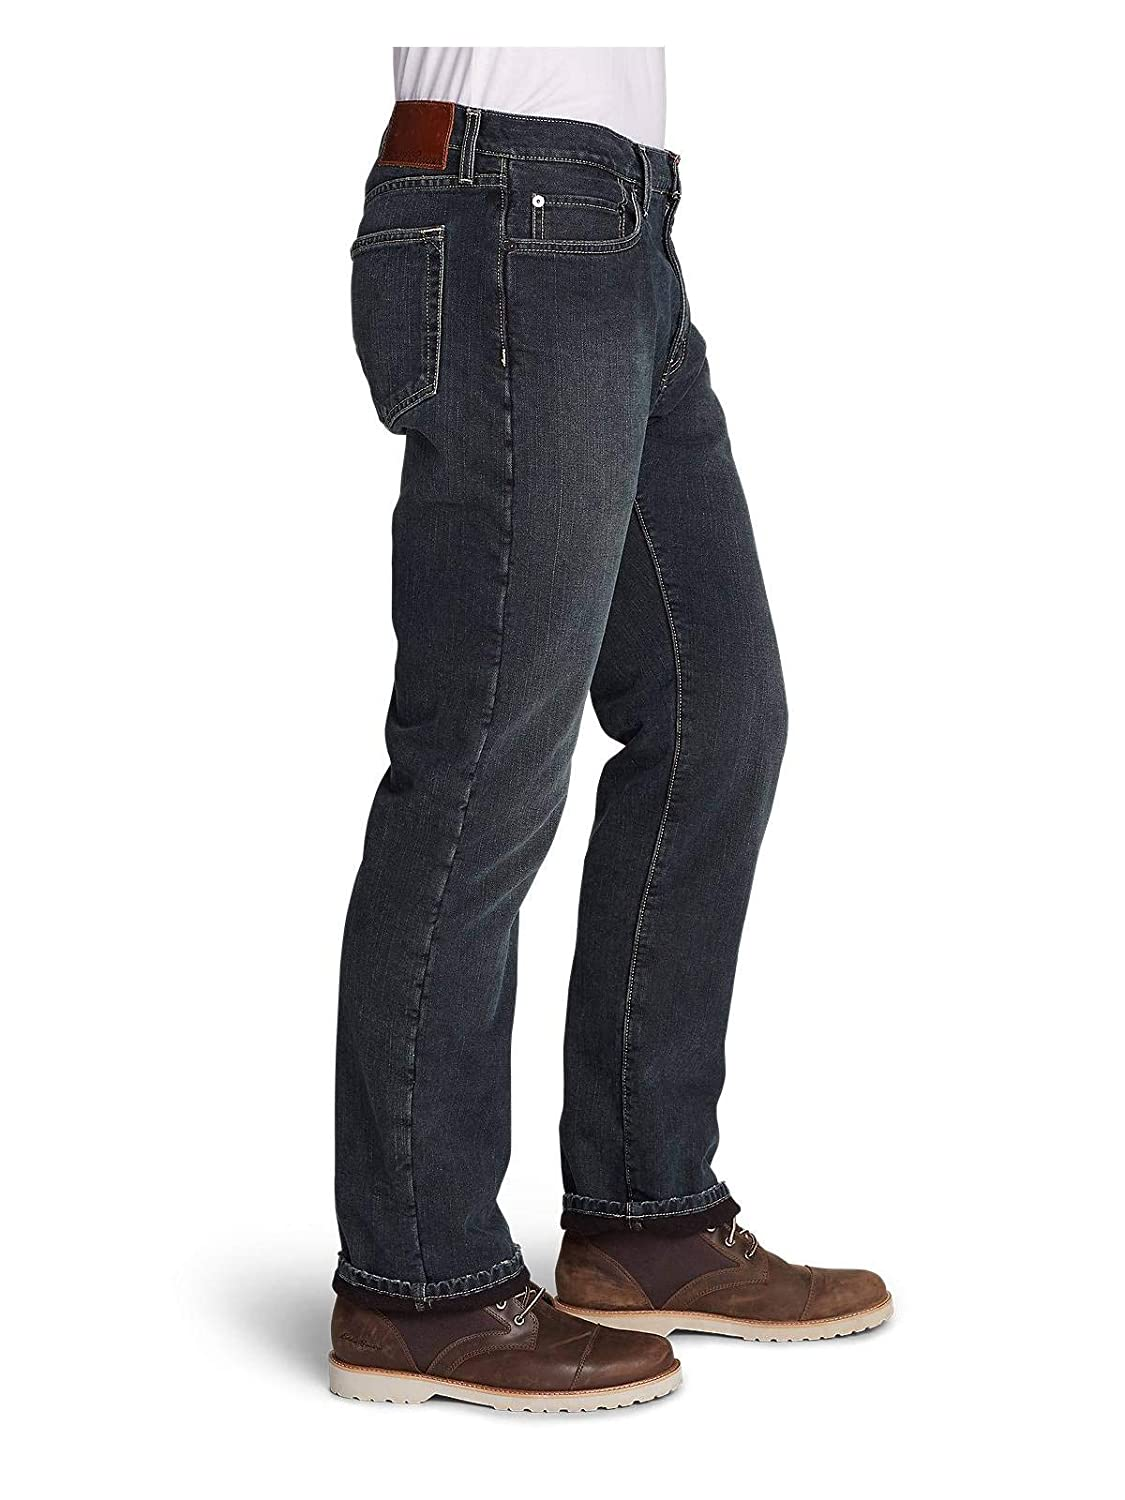 Straight Fit Eddie Bauer Mens Fleece-Lined Jeans